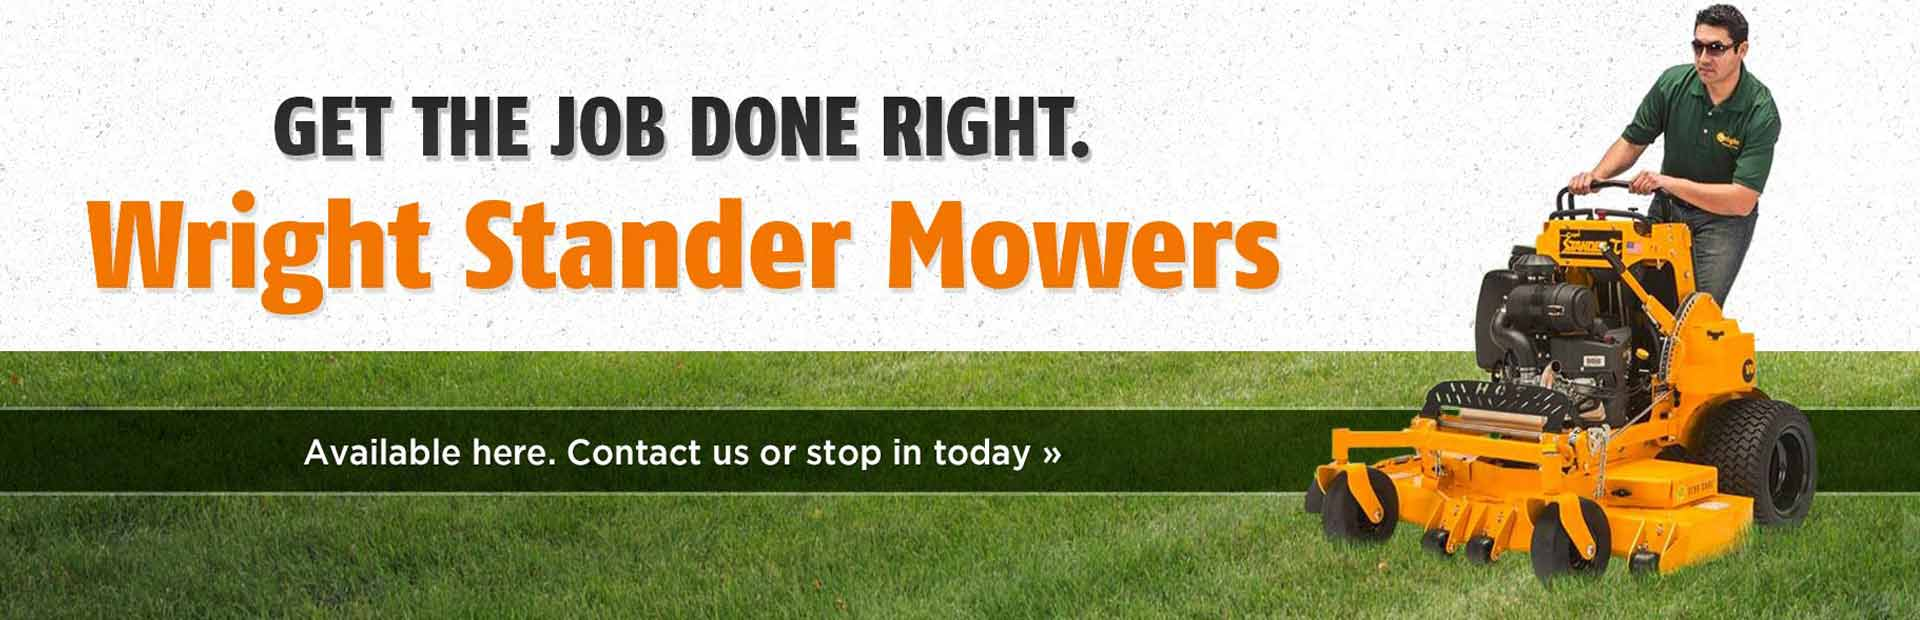 Wright Stander Mowers: Get the job done right.